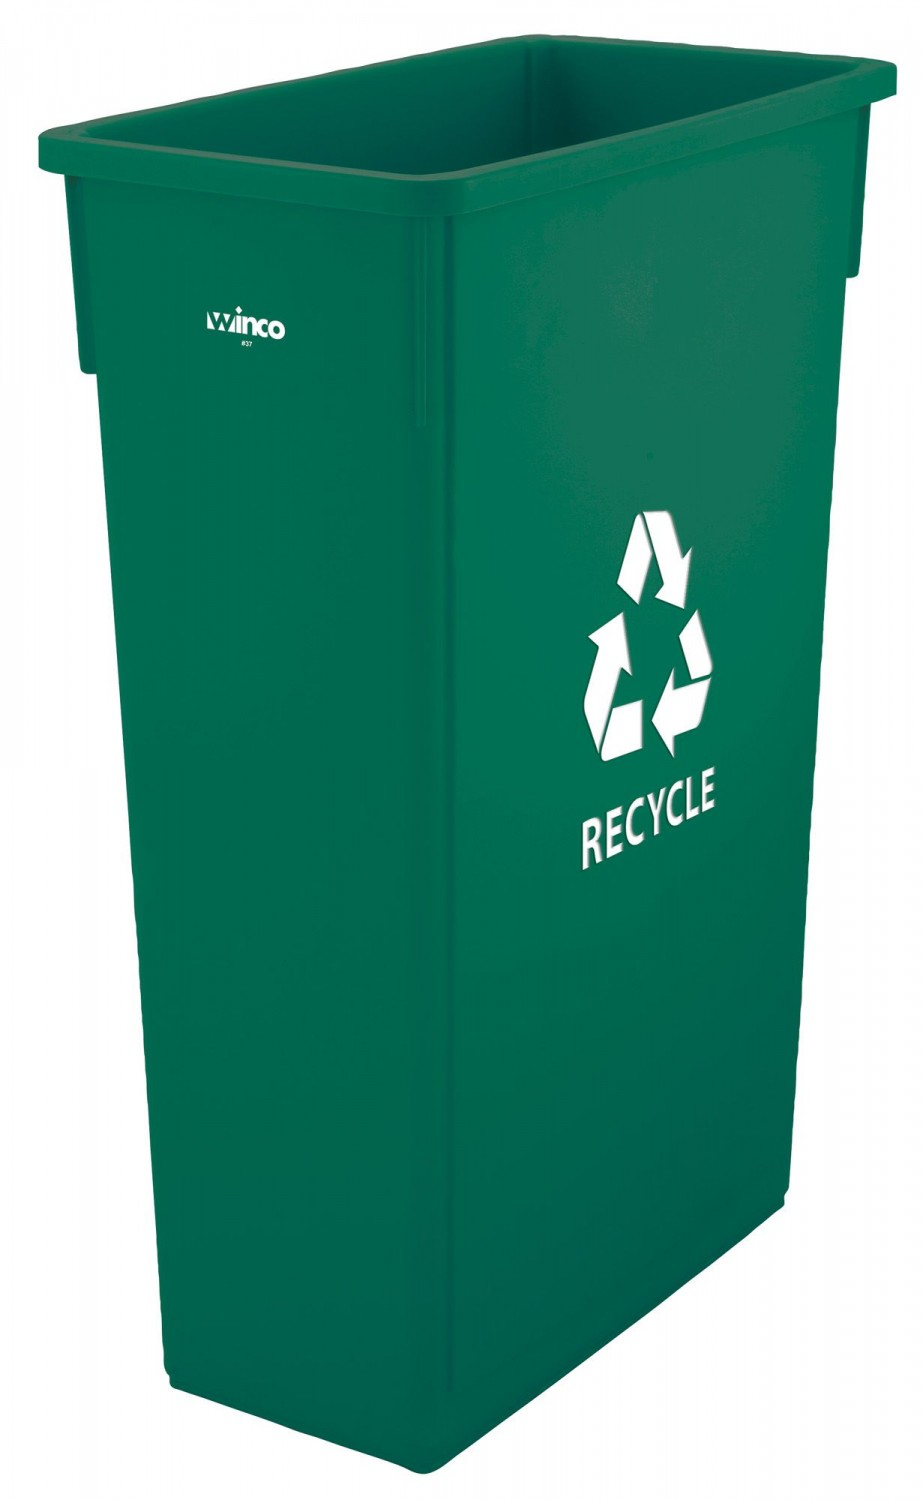 Winco PTC-23GR Slender RECYCLE Trash Can, Green 23 Gallon